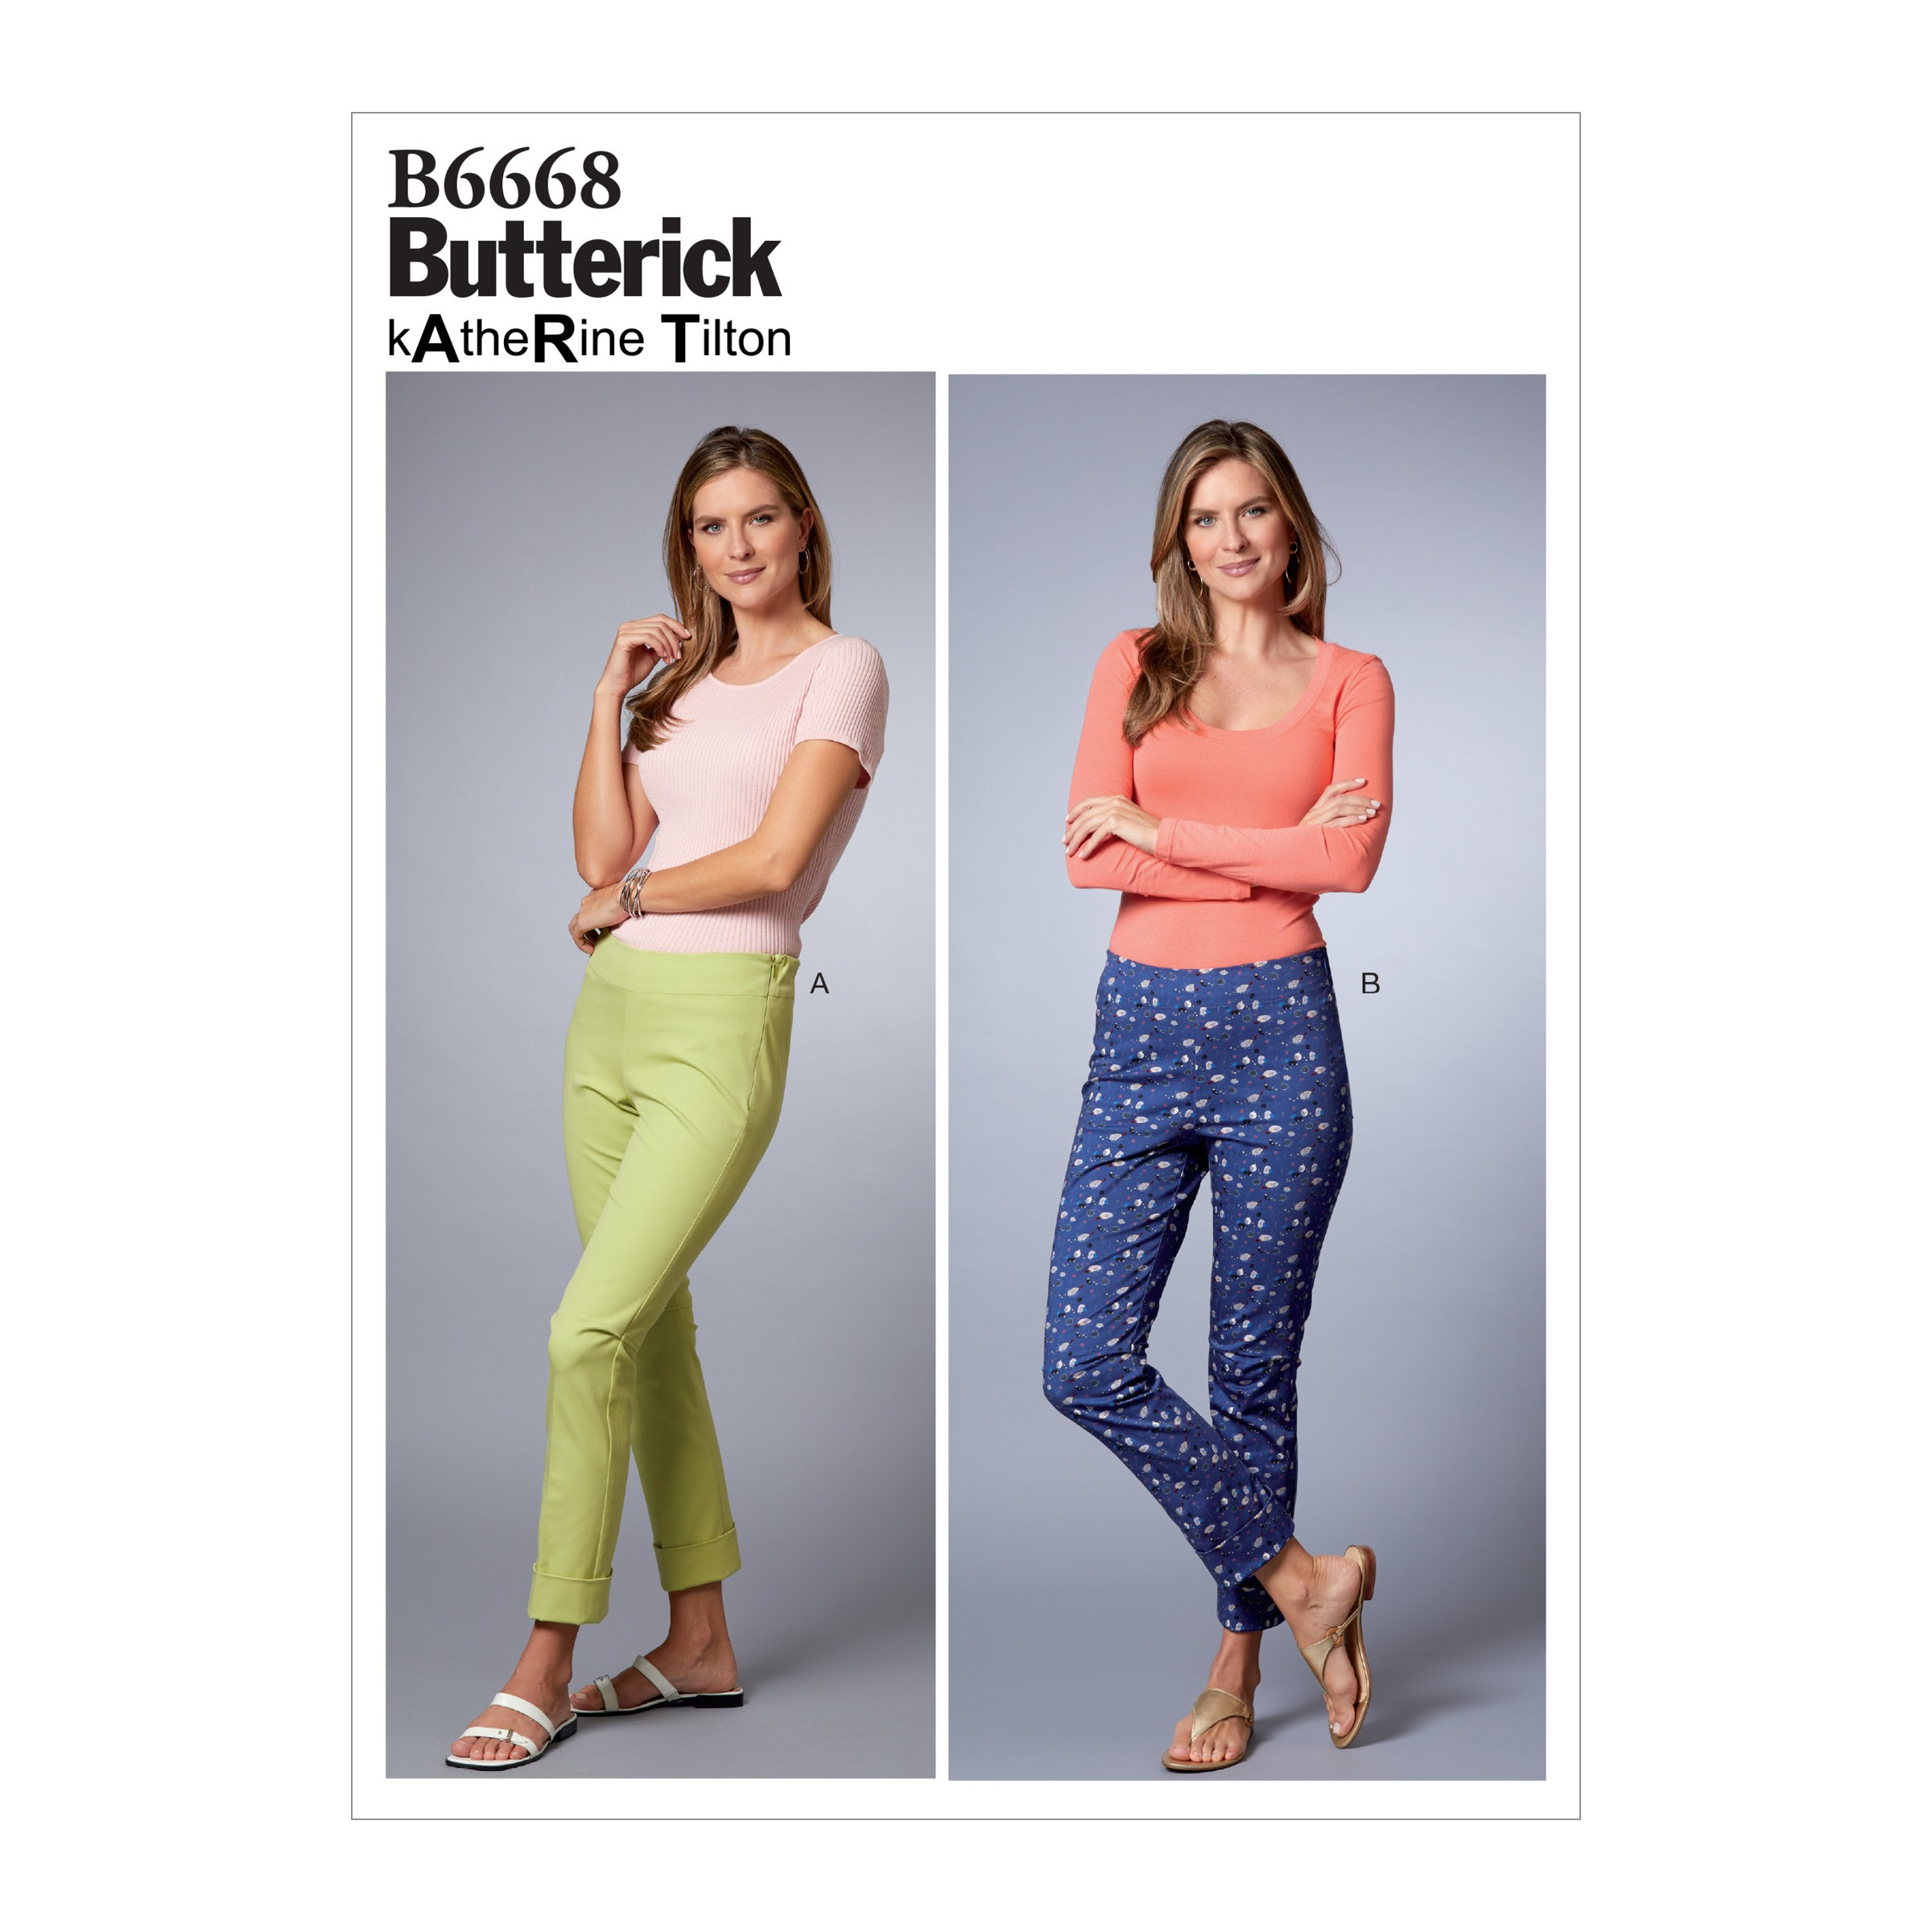 Butterick Sewing Pattern 6668 Misses' High Wasted Trousers